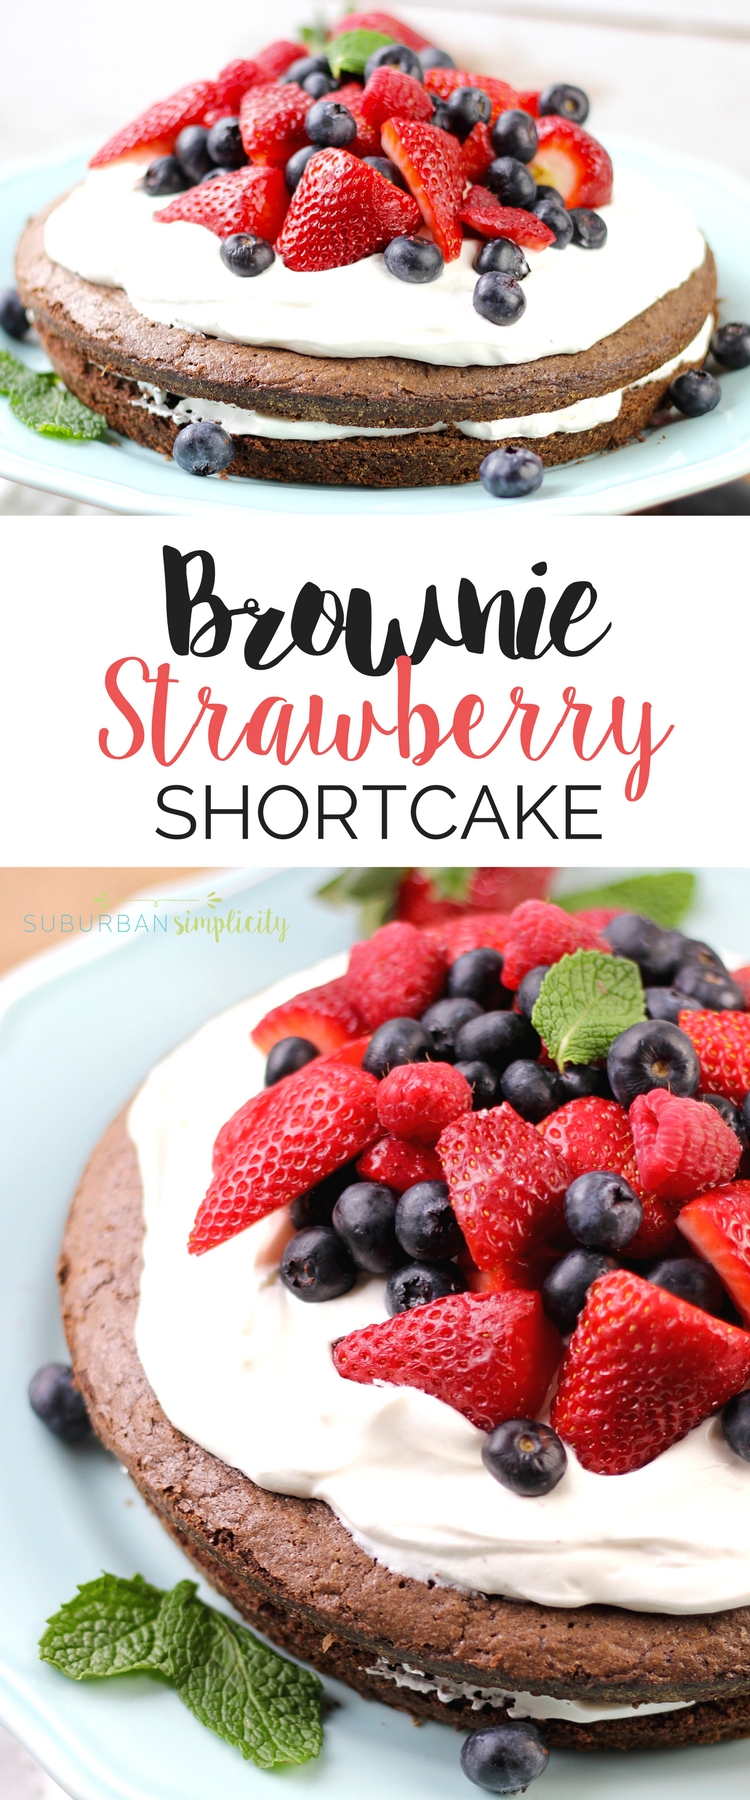 Looking for a yummy brownie recipe? Layers of fudgy chocolate brownie with a creamy center, topped with berries make this Brownie Strawberry Shortcake a winning dessert combination! #brownies #shortcake #summer